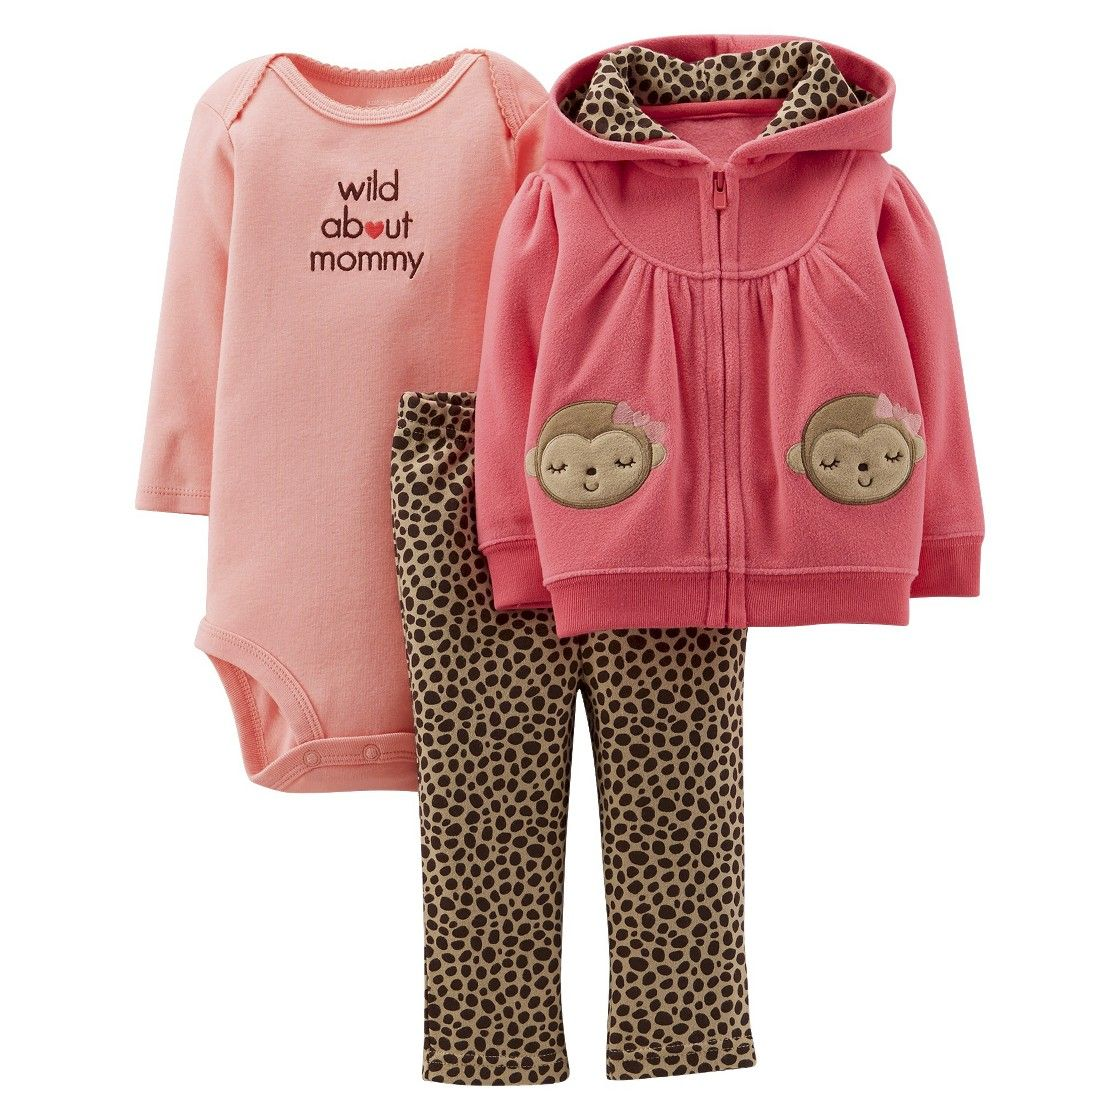 NEW Carter/'s Baby Girl 3 Piece Outfit Set Pink Brown Monkey 3 Months